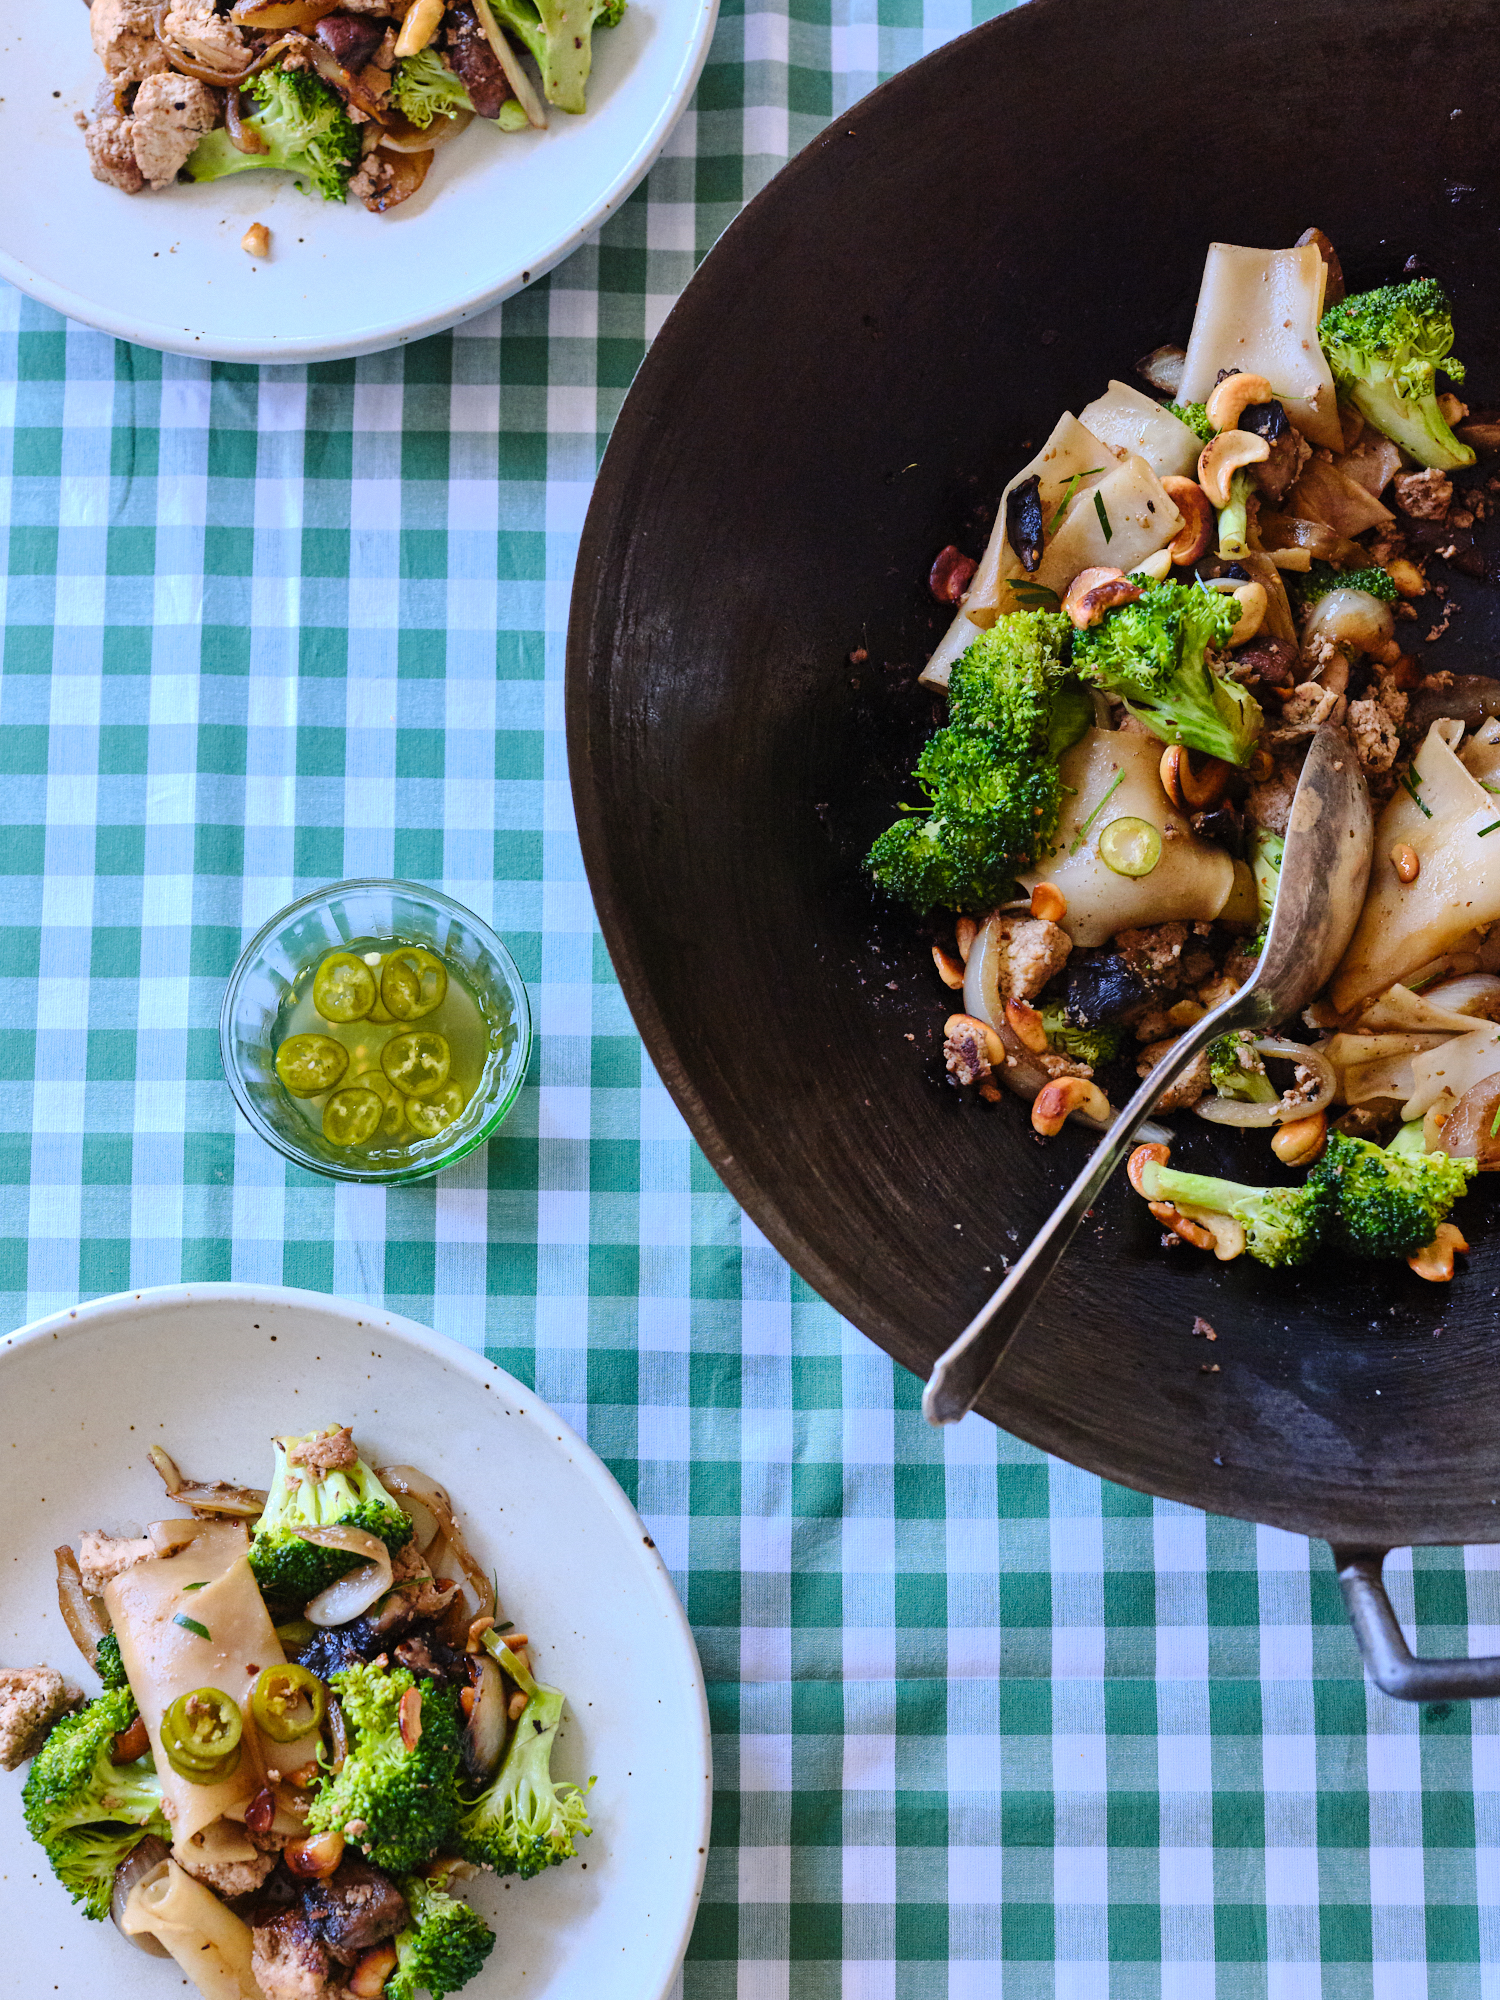 A Fave Rice Noodle Stir Fry with Whatever Green Veg you Have on Hand